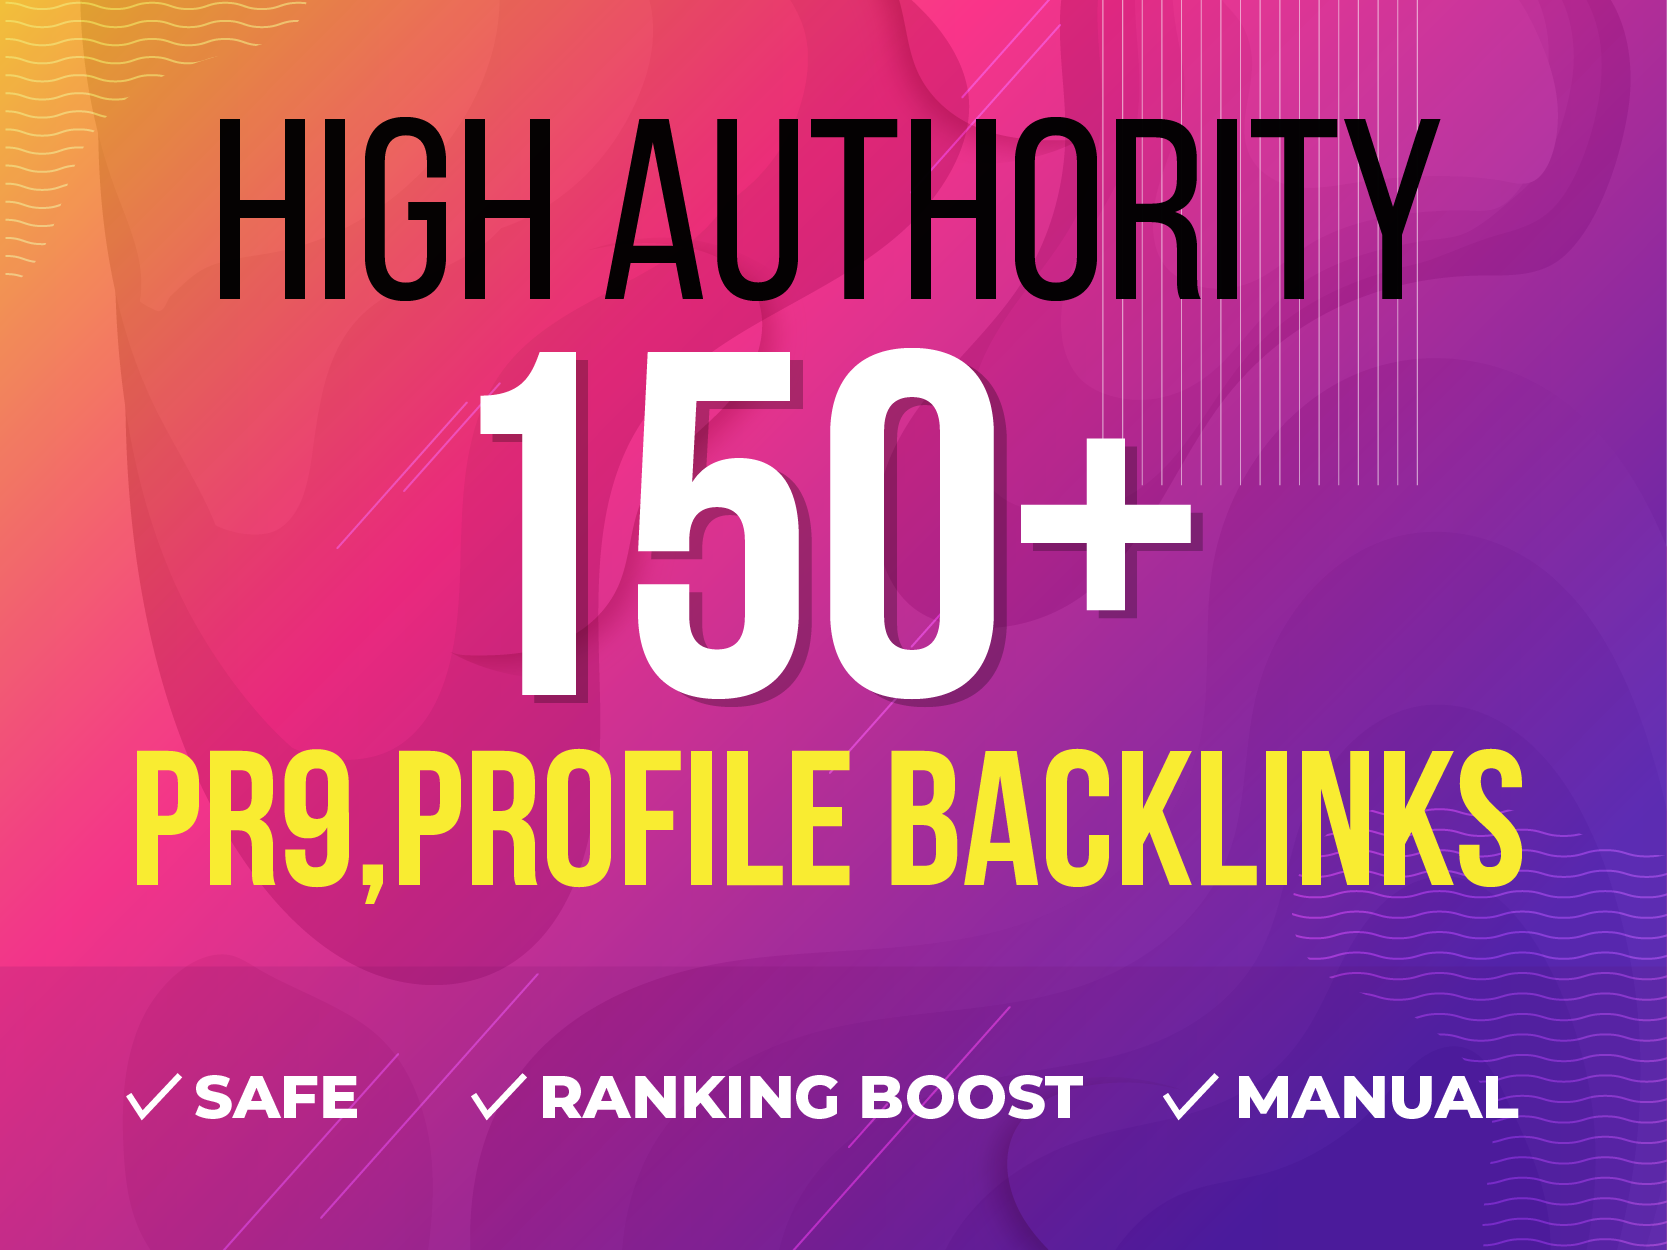 50 High Authority,  PR9 Profile Backlinks,  SEO SErvices